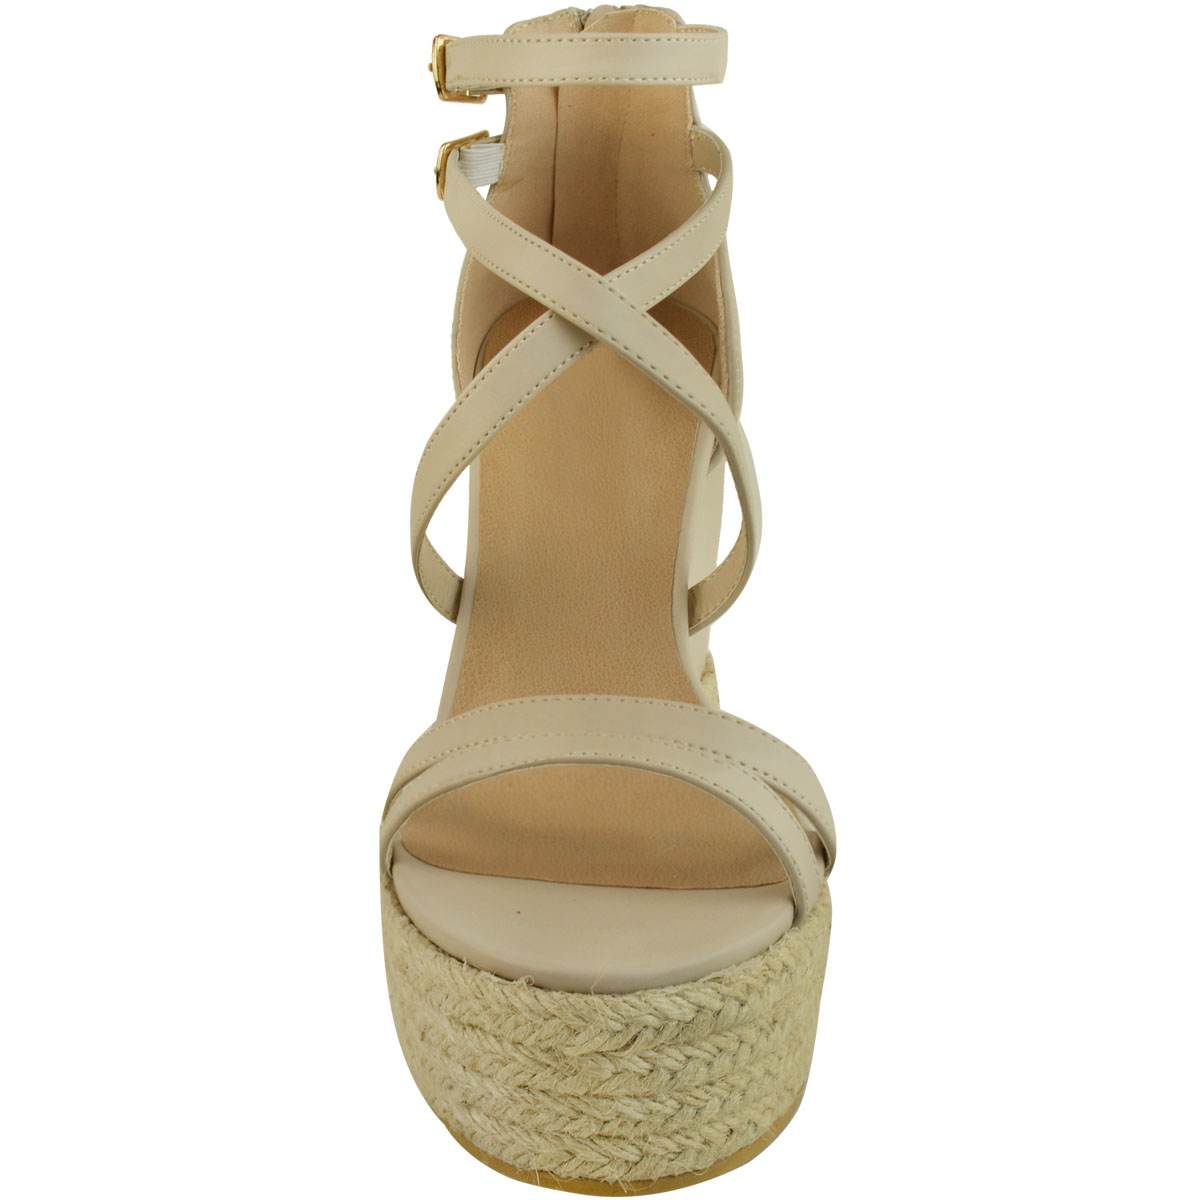 New-Womens-Ladies-Wedge-Espadrille-Sandals-Strappy-Rose-Gold-Summer-Shoes-Size thumbnail 21